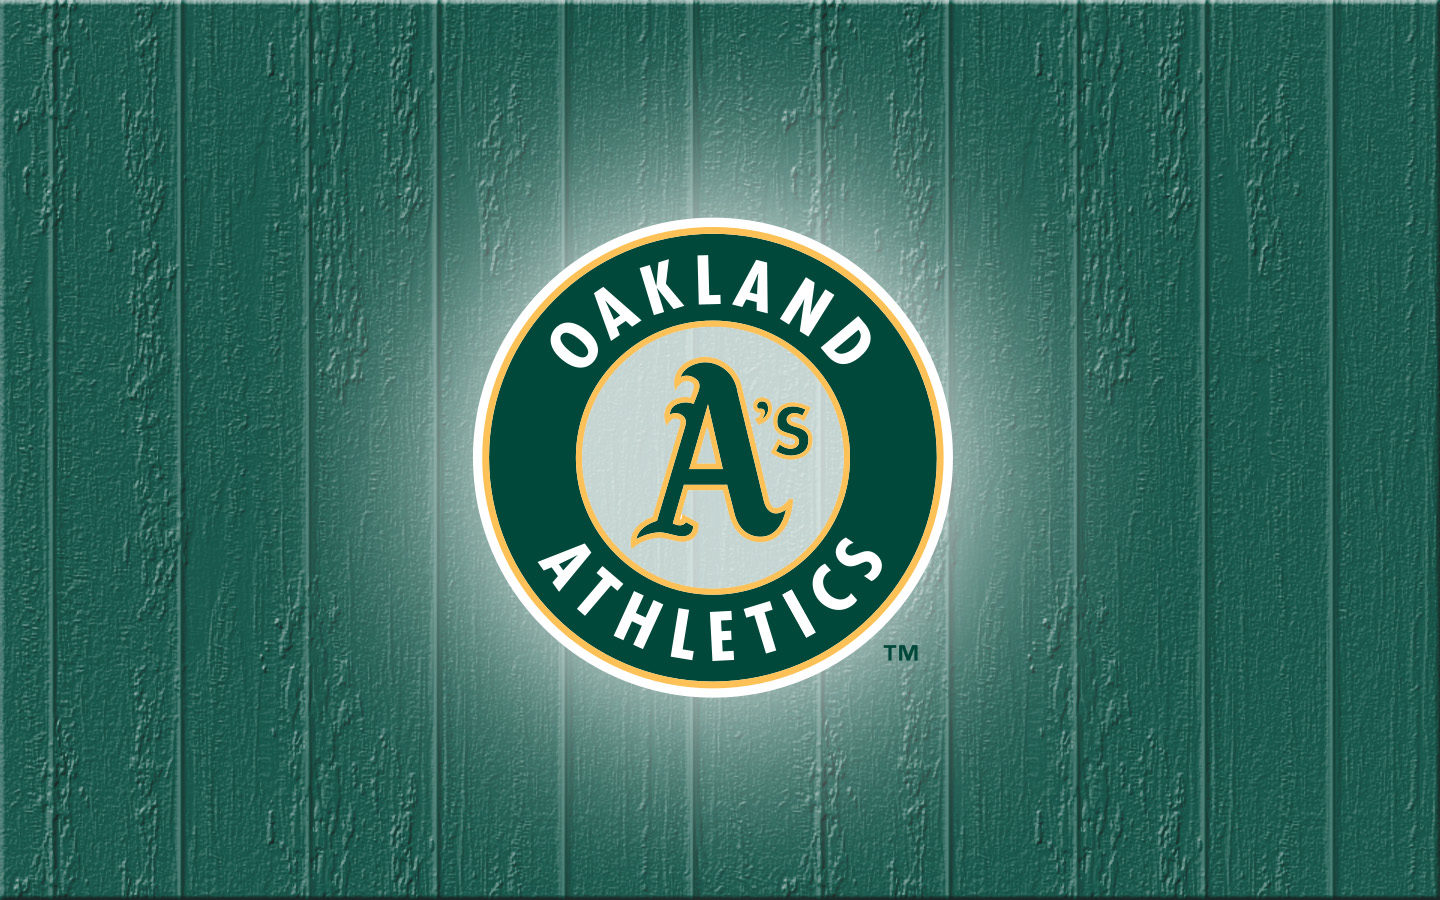 Oakland Athletics wallpaper 1440x900 69464 1440x900